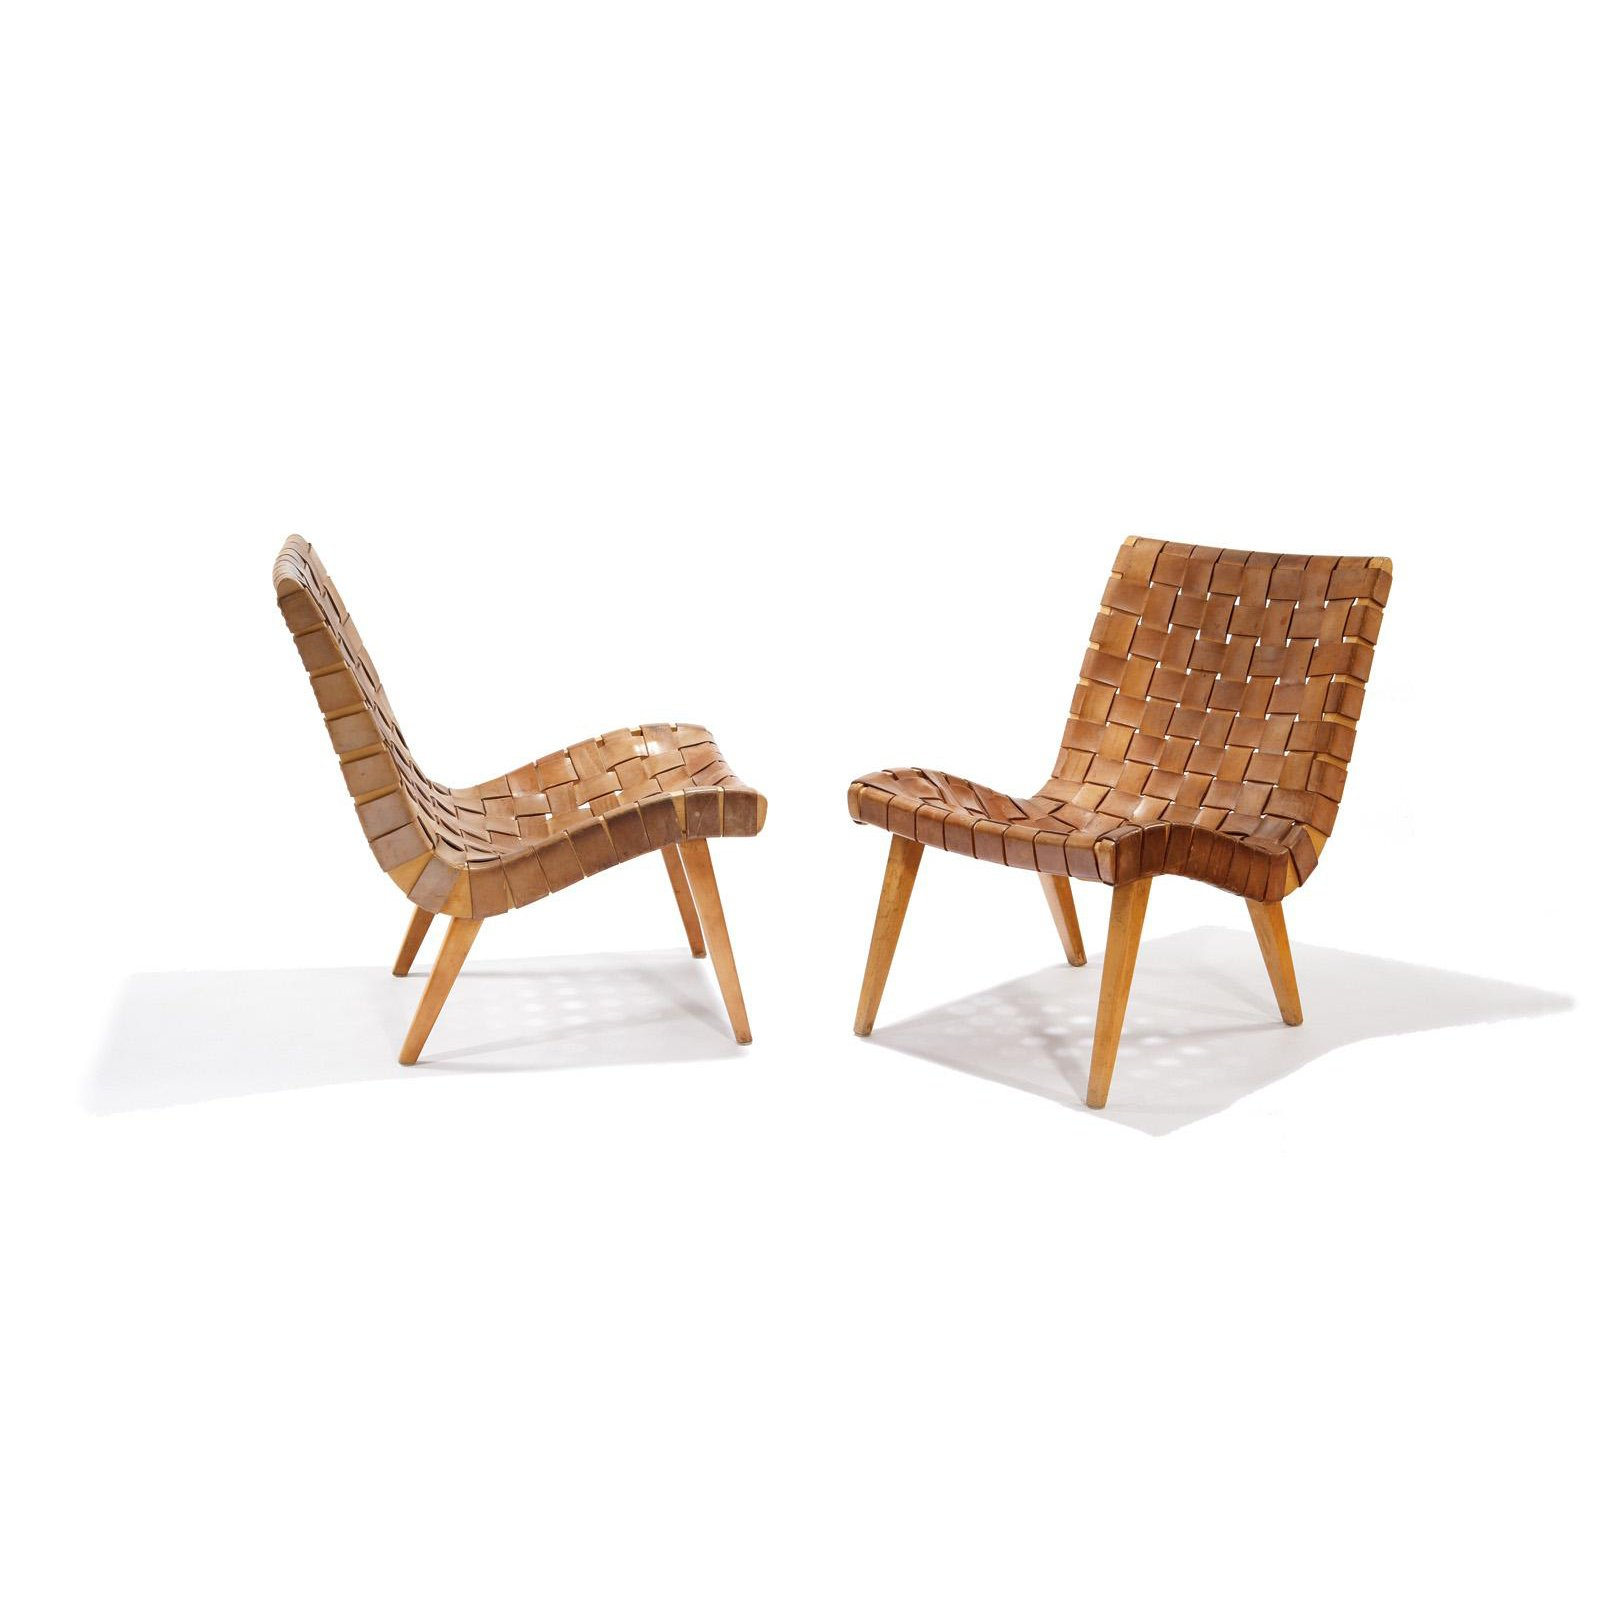 Shortly after his arrival to the United States in 1939, Risom met Hans Knoll, the founder of Knoll, with whom he would work to produce some of the company's earliest interior and furniture designs. Widely known as the first chair to be designed for Knoll, this iconic Risom Lounge Chair brought the natural materials and understated form of Scandinavian design to large-scale U.S. production. It makes use of few materials that were widely available during wartime—surplus army webbing and parachute straps—wrapped around a supple, curving wooden frame.  Photo 4 of 9 in Happy 100th Birthday, Jens Risom